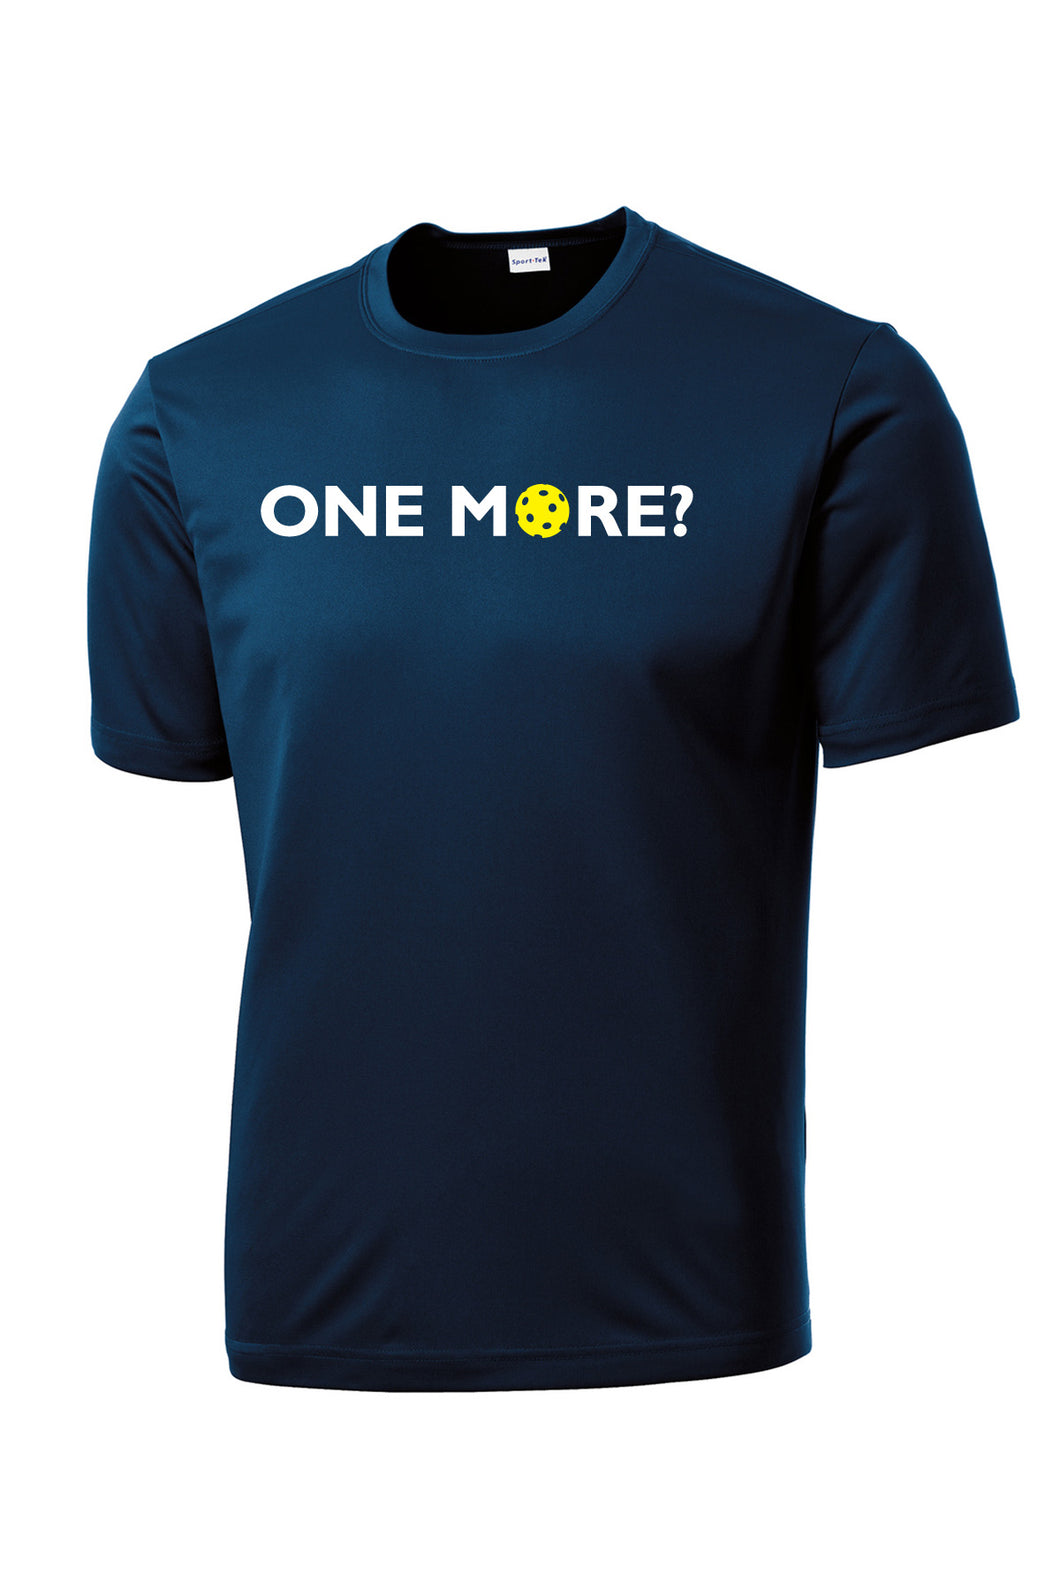 One More? Mens Performance Pickleball Tee